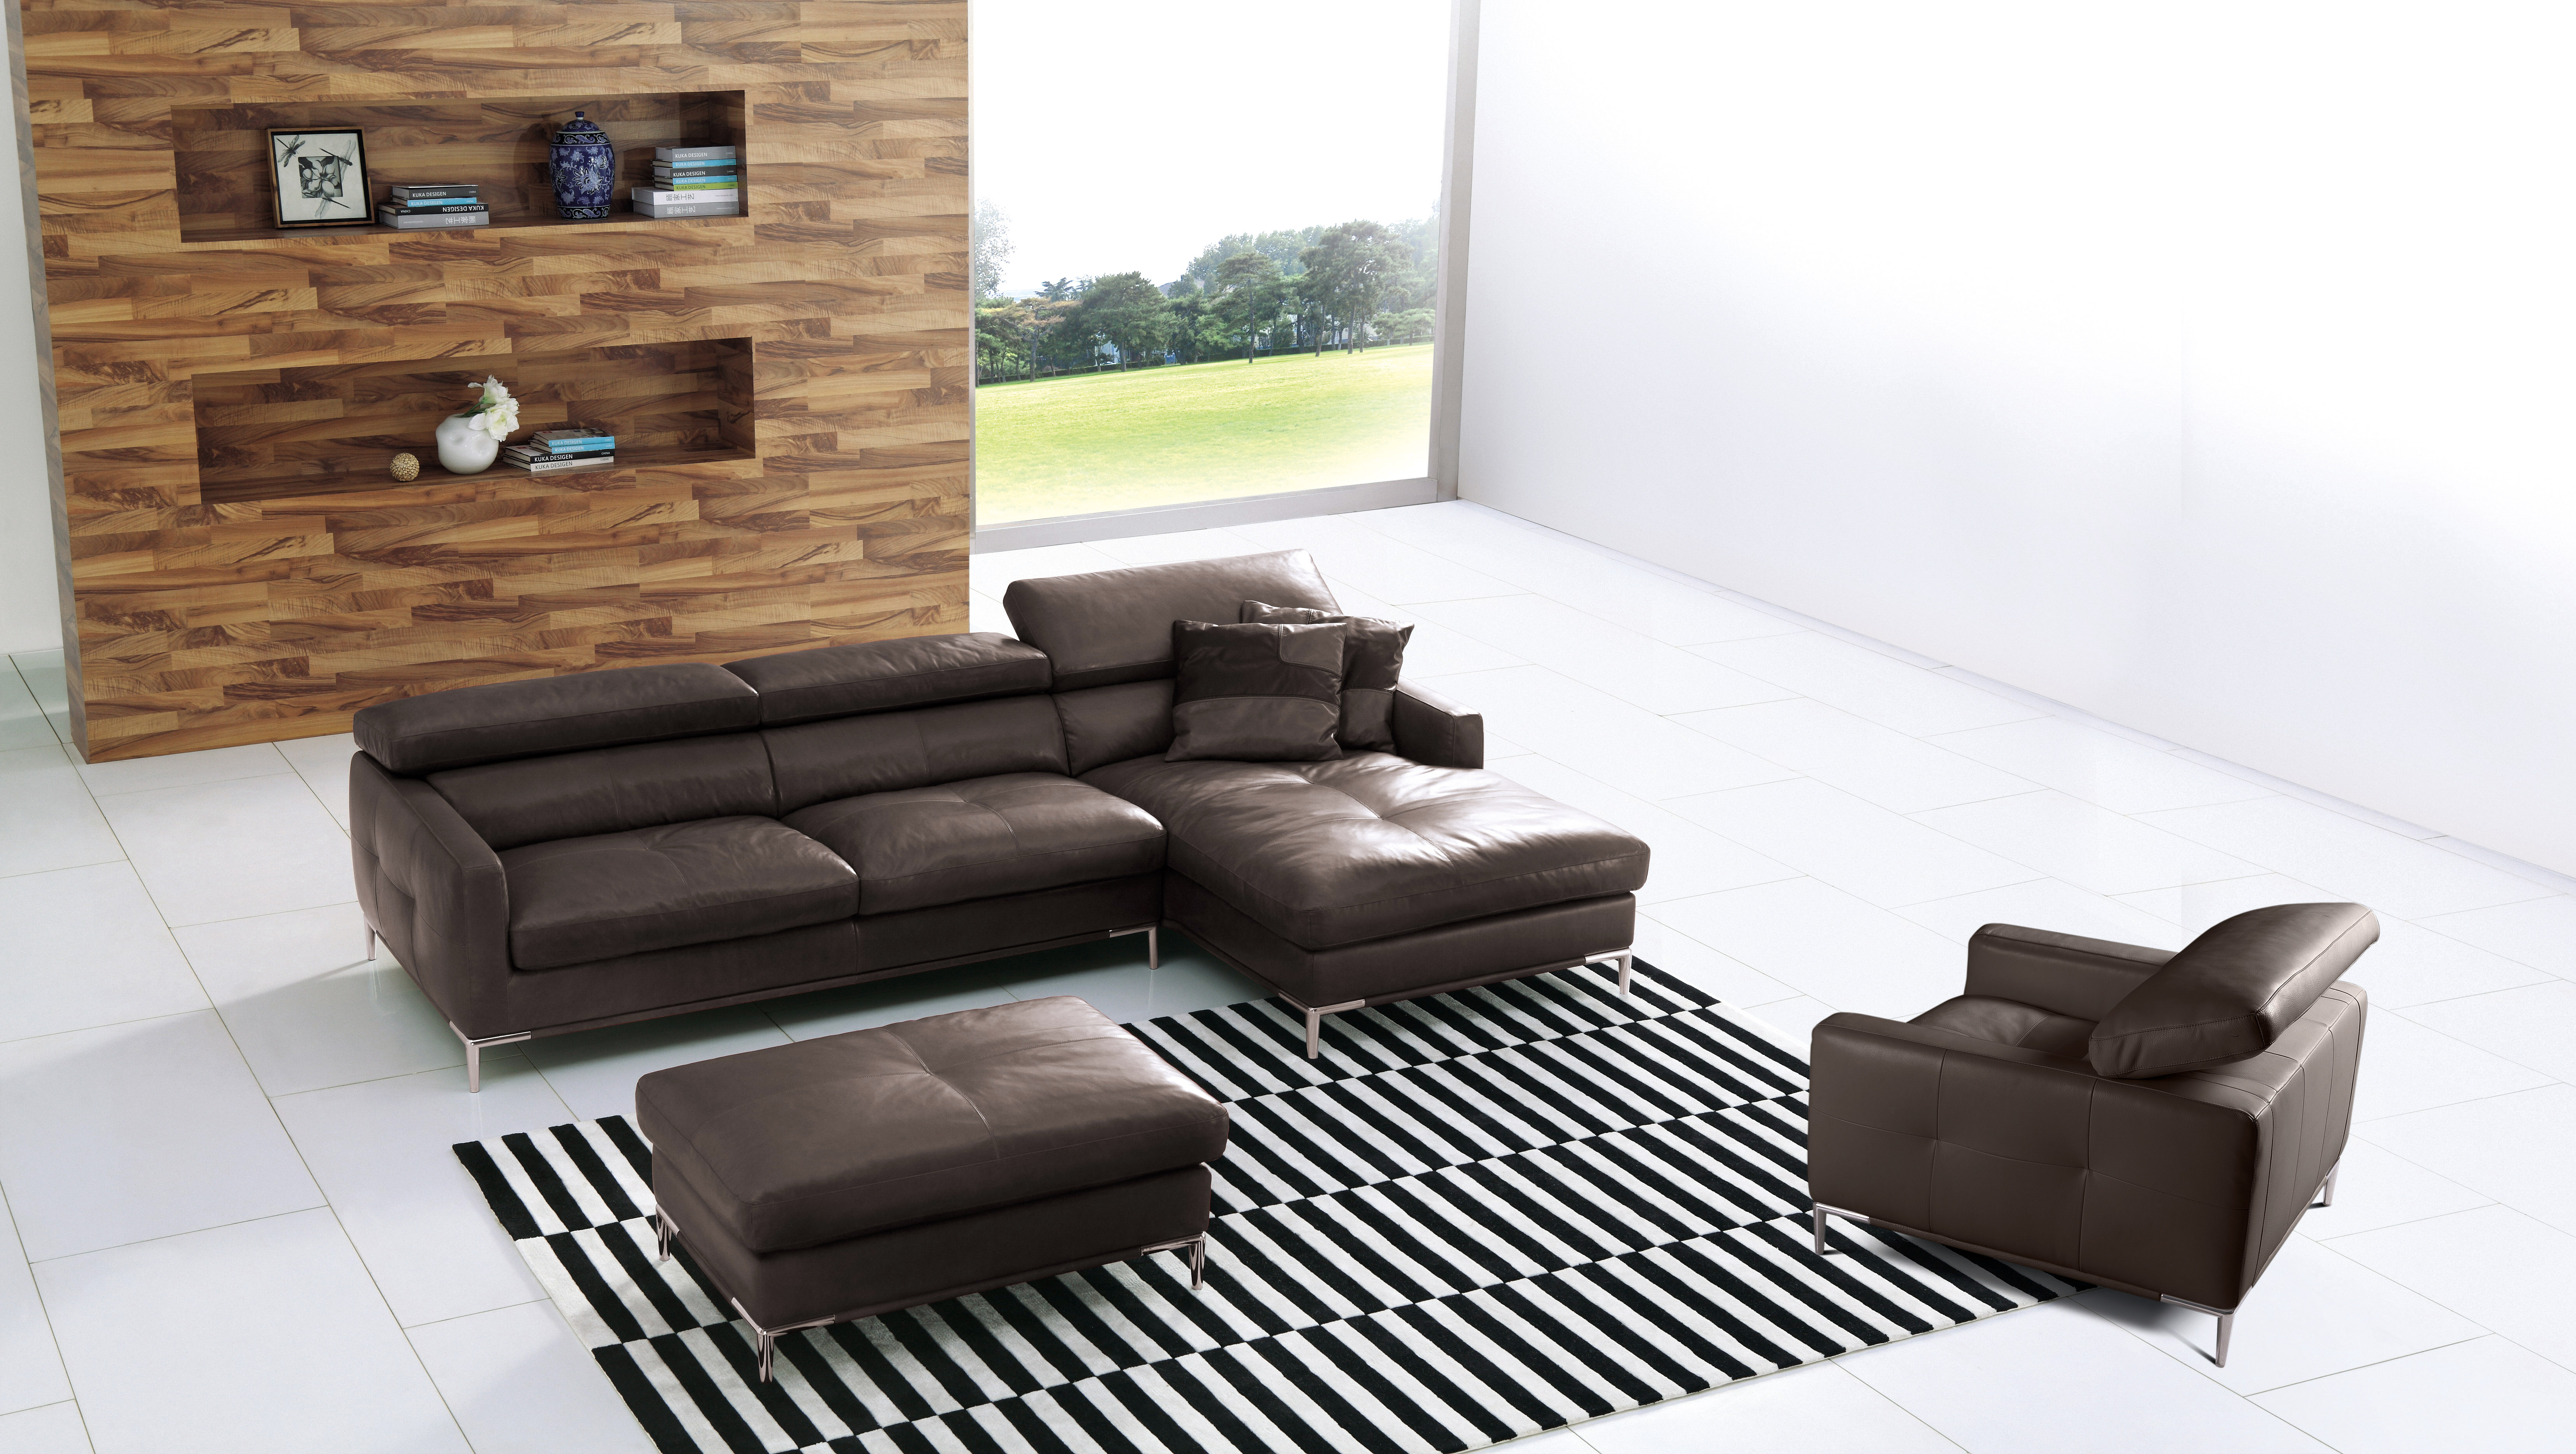 Elite Full Italian Leather L shape Furniture with Pillows Garden